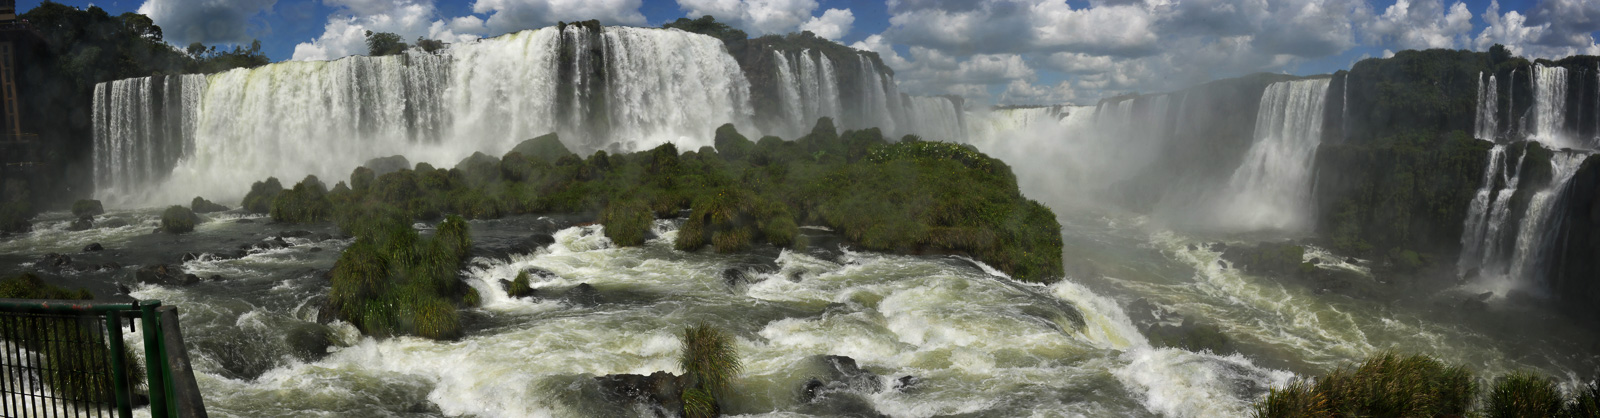 Cataratas del Iguazu [28 mm, 1/125 sec at f / 18, ISO 250]